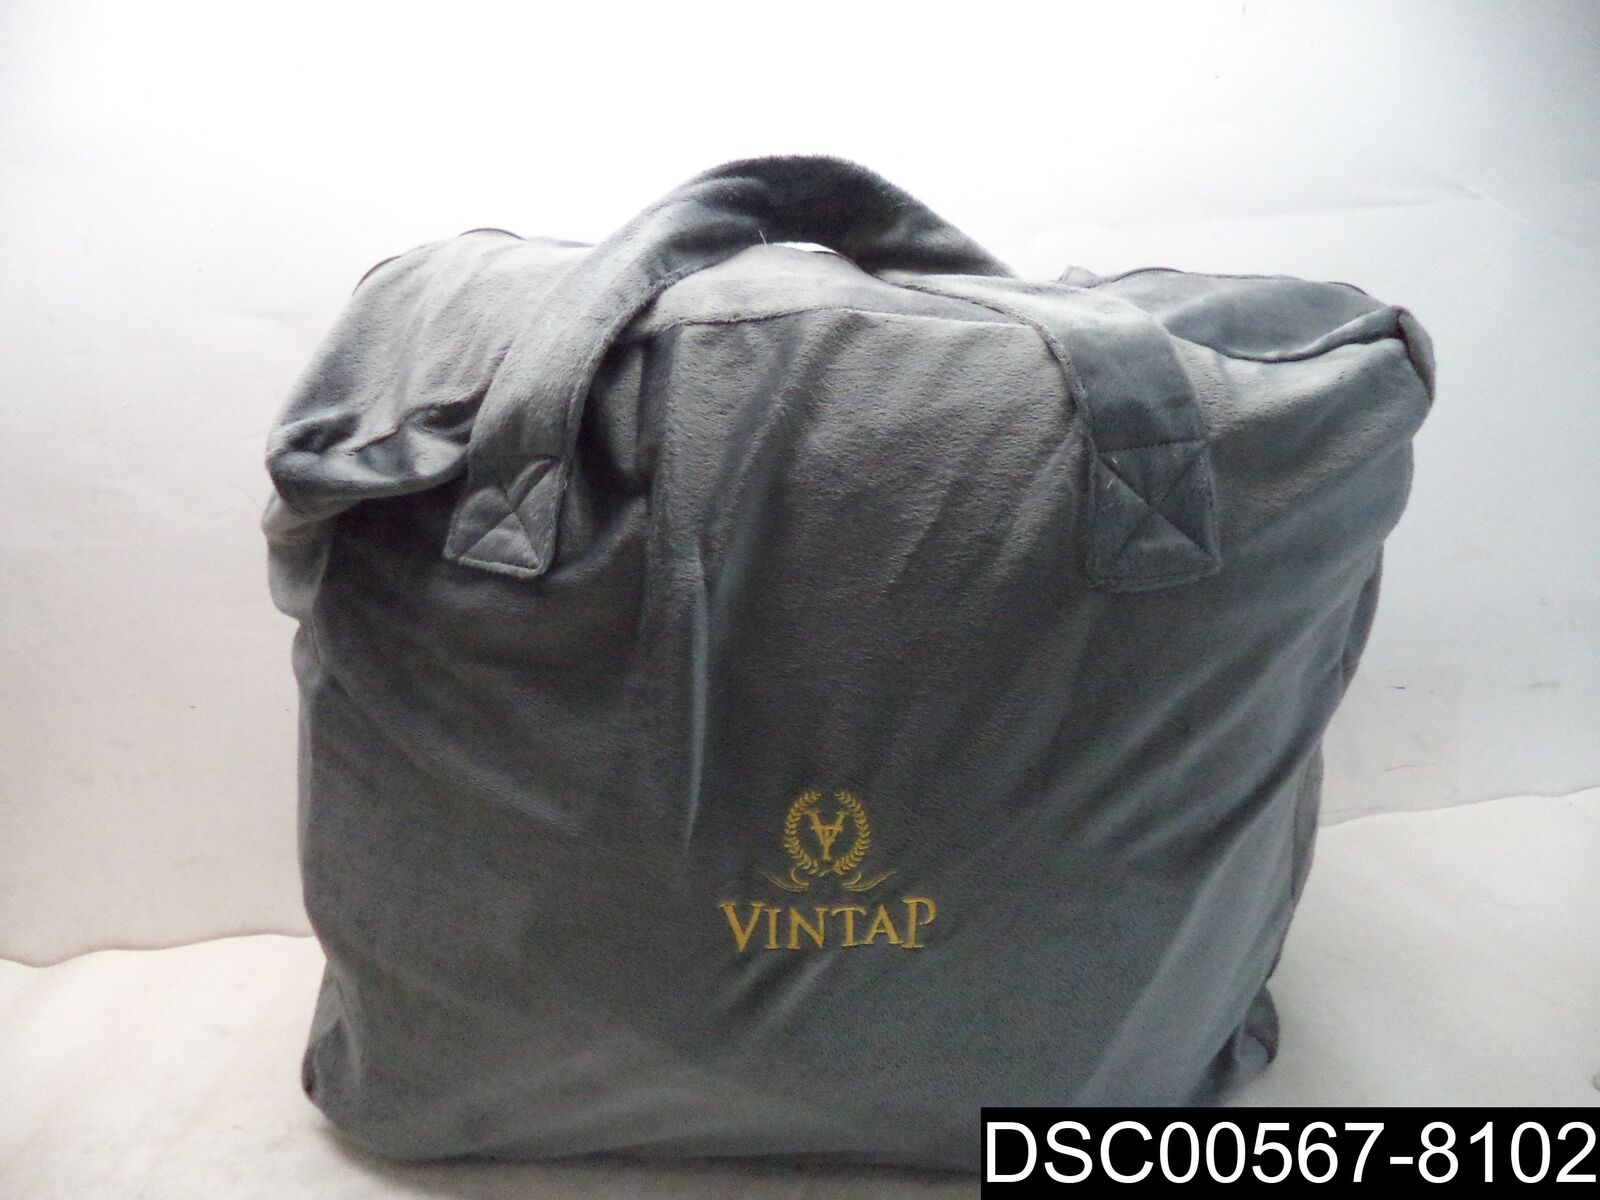 Vintap Weighted Blanket For Adults And Teens 60 X80  Heavy, Gravity Like 15 LBS